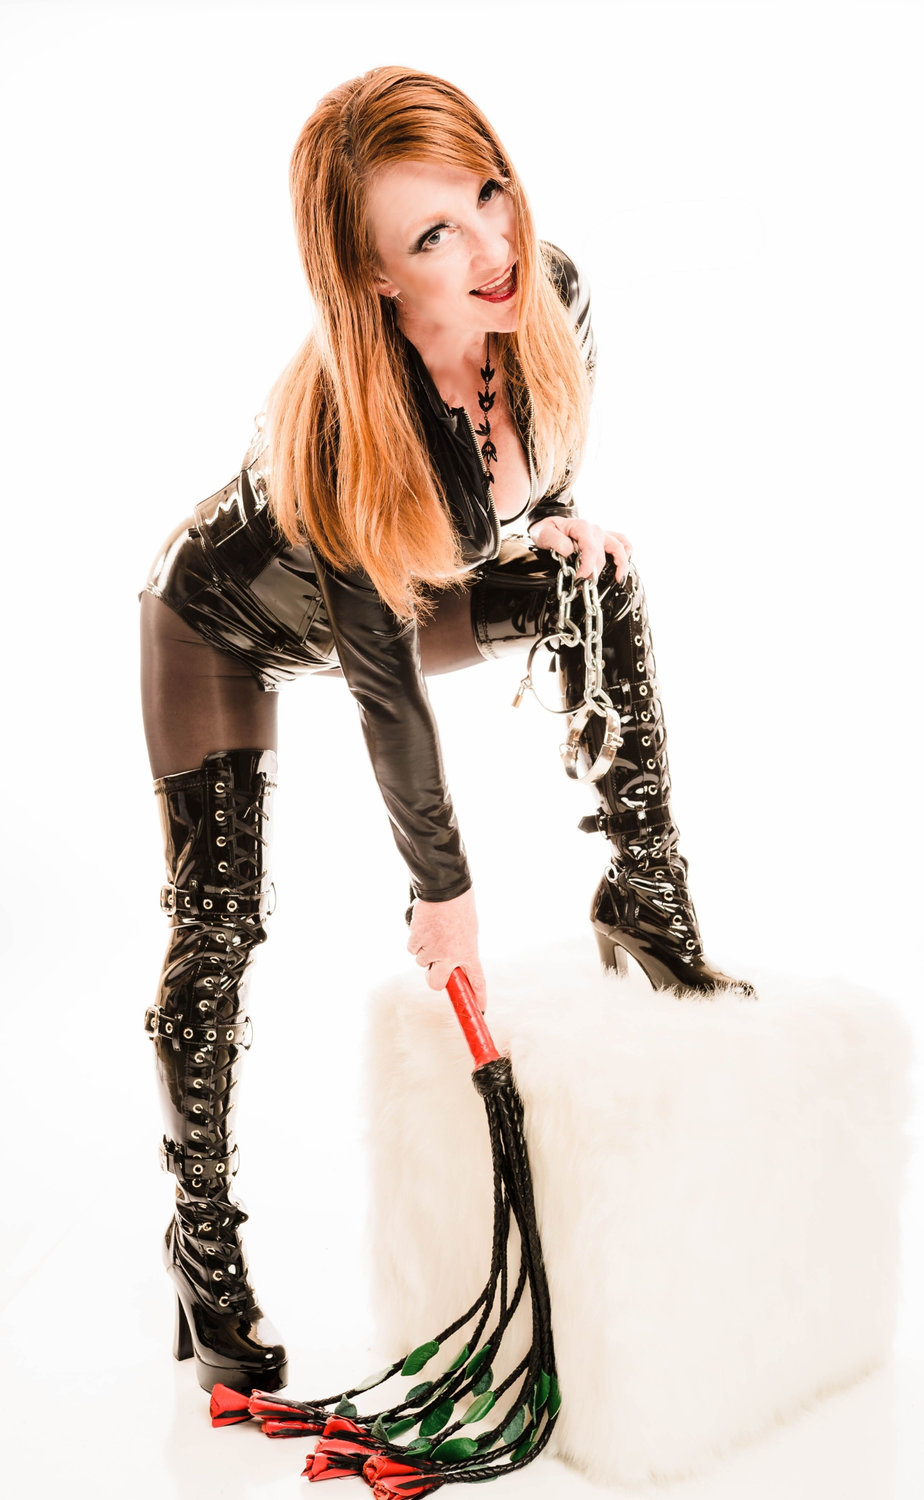 90 Min Session with Mistress Tristan